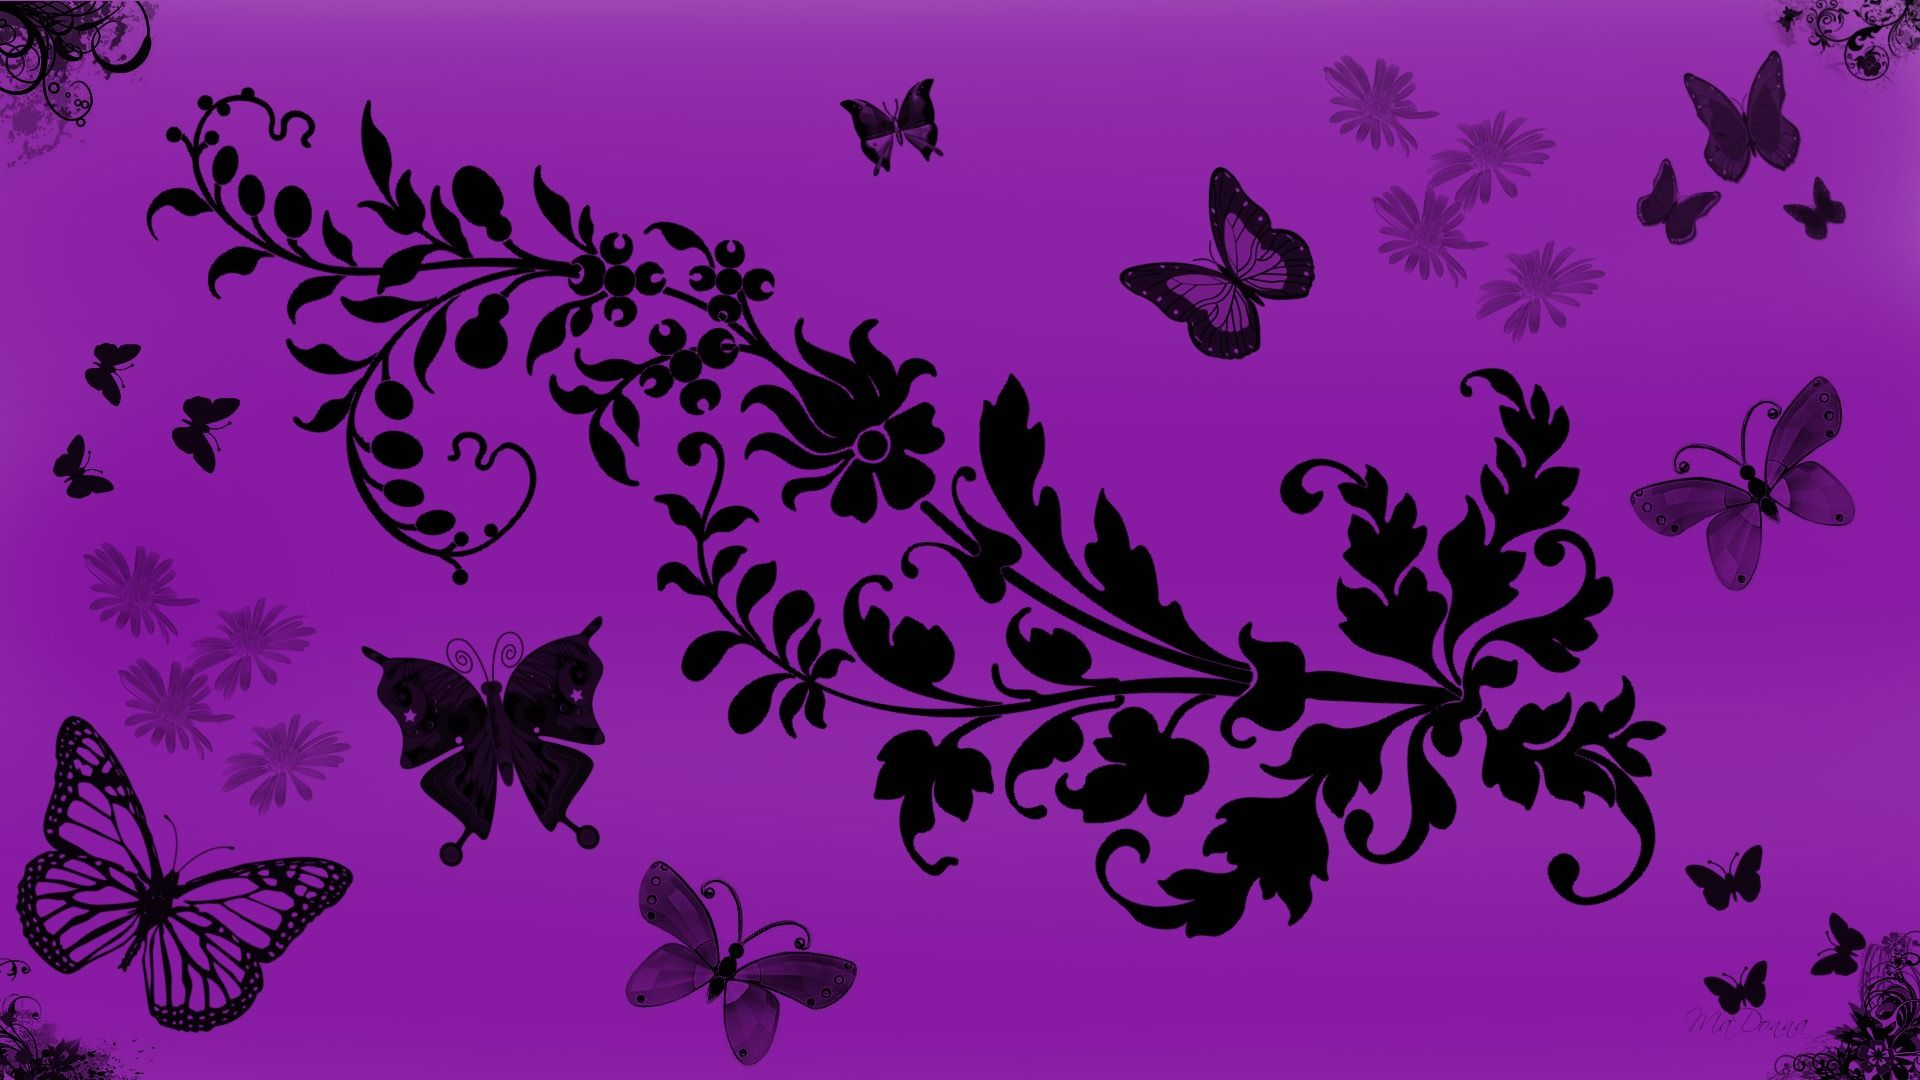 1920x1080 Purple Butterfly Wallpaper - Wallpapers Browse